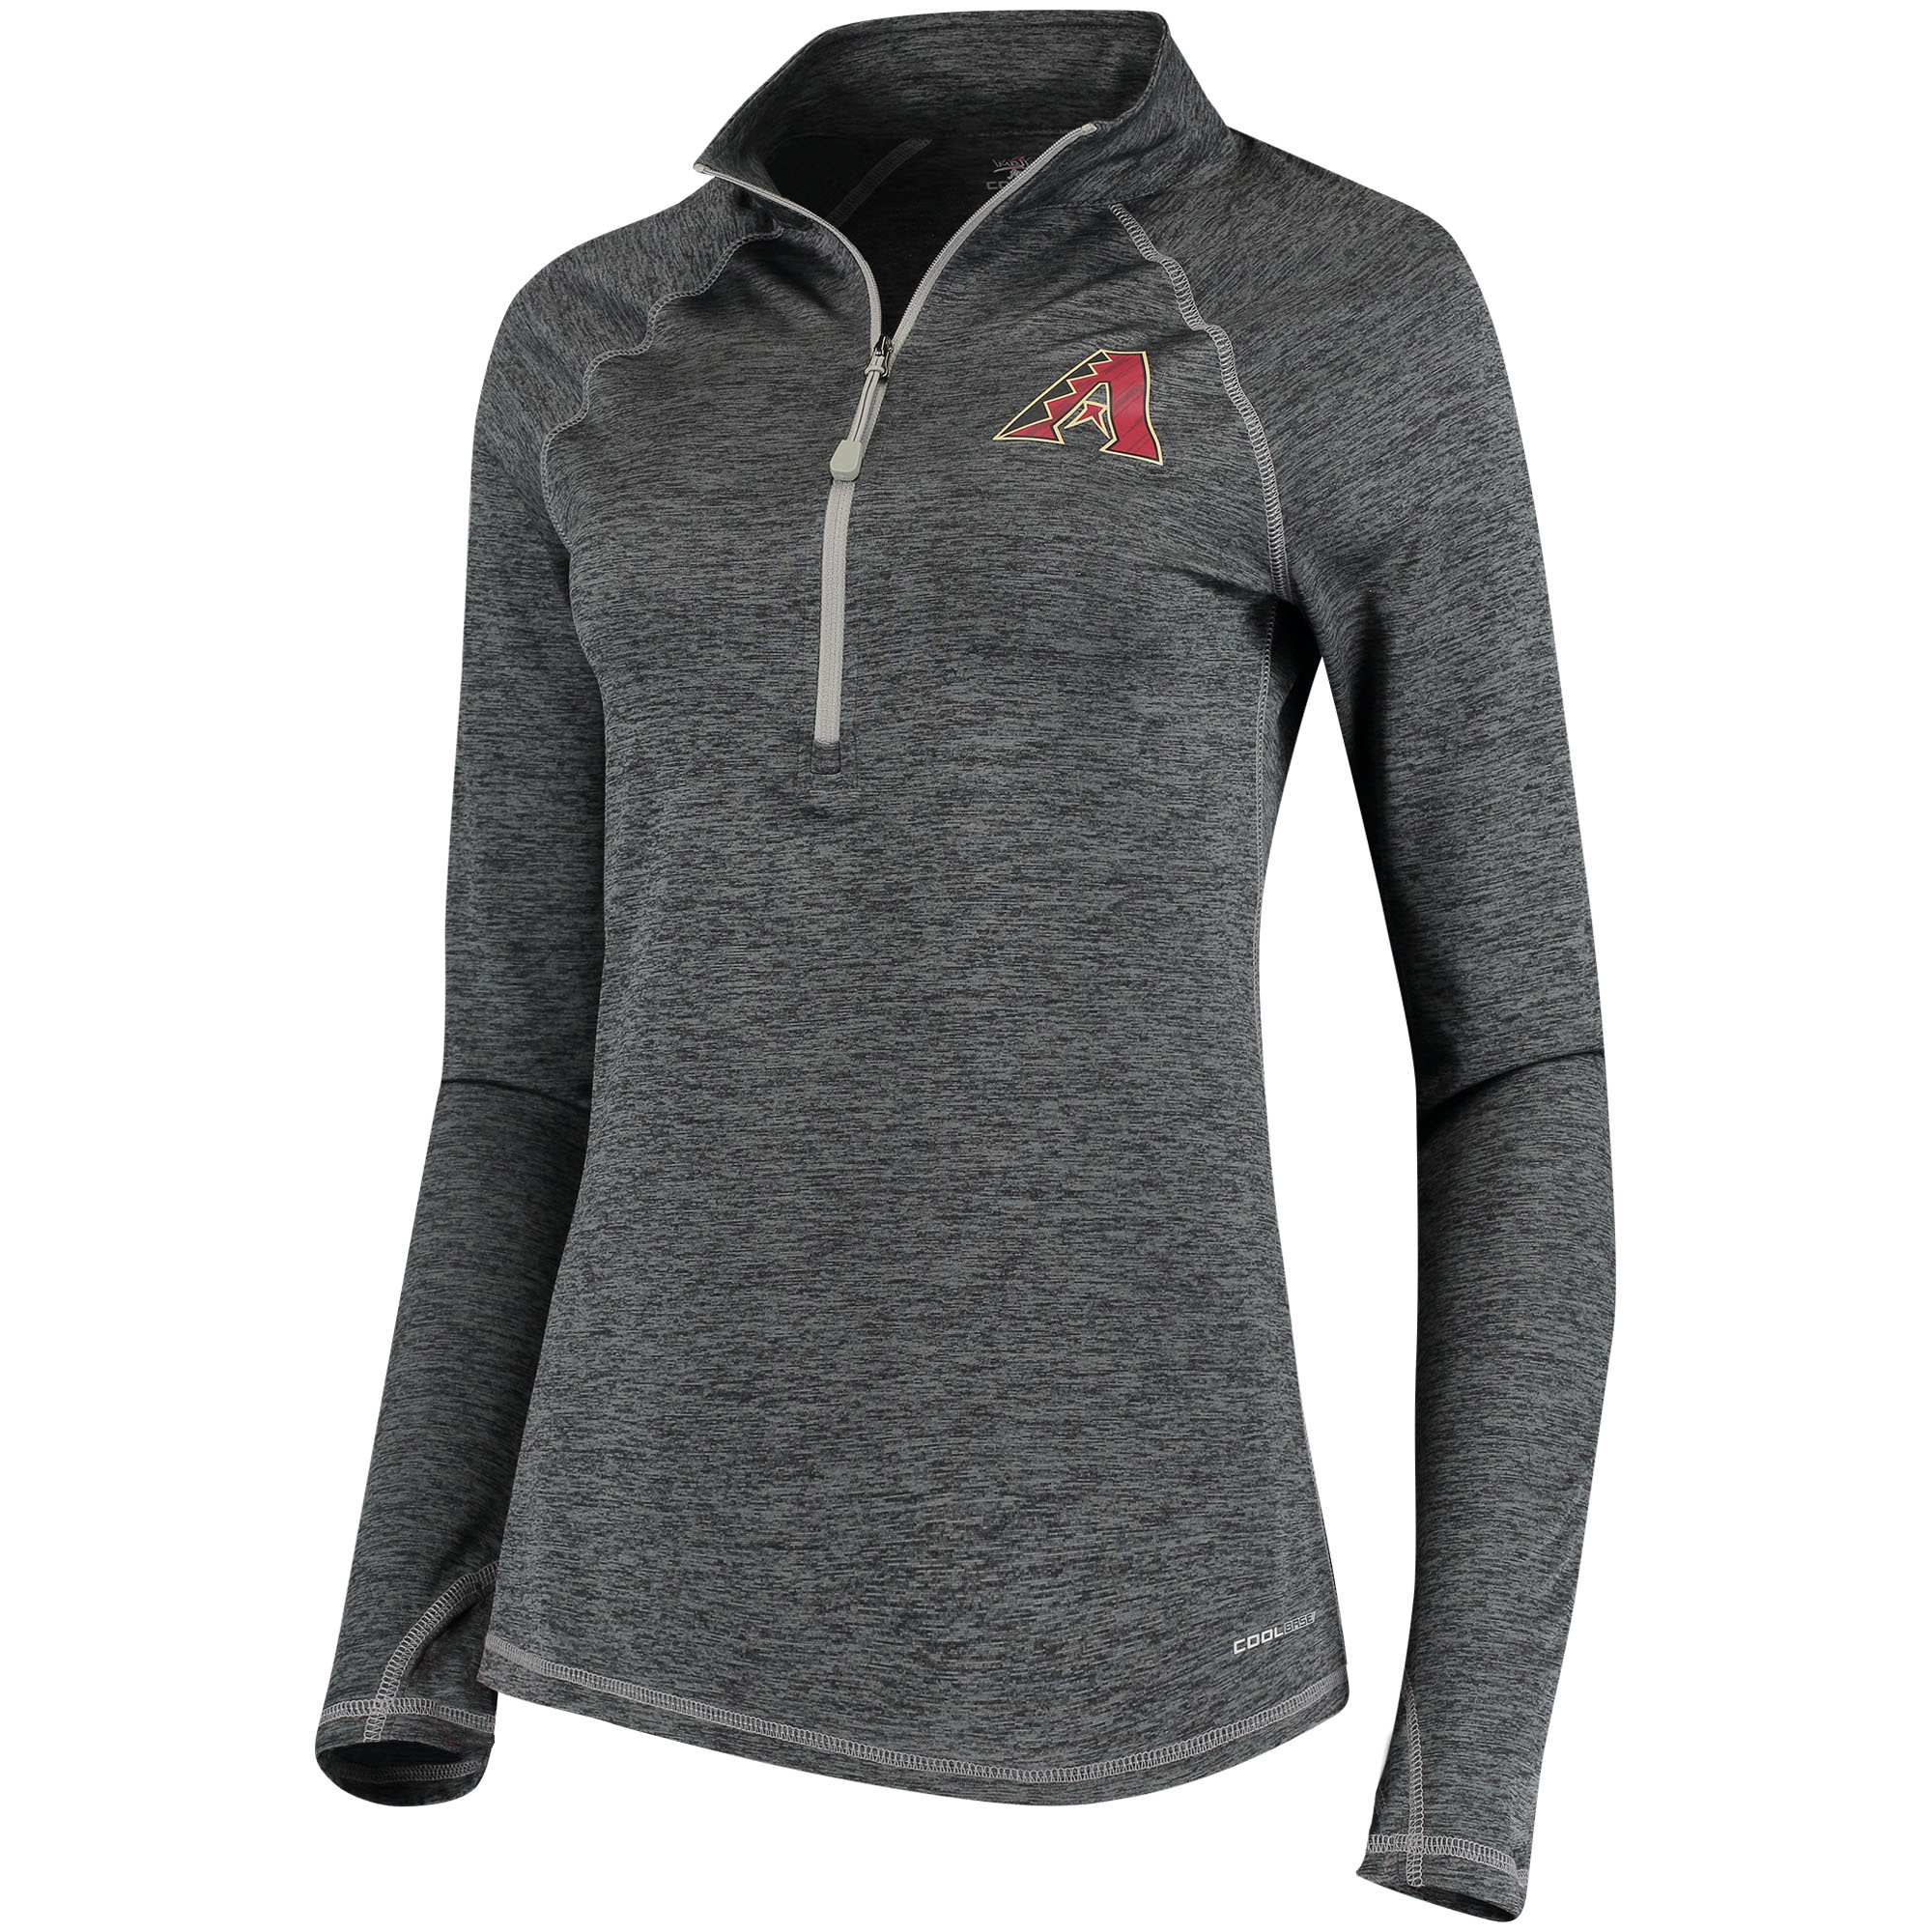 Arizona Diamondbacks Majestic Women's Don't Stop Trying Cool Base Half-Zip Pullover Jacket Charcoal by MAJESTIC LSG